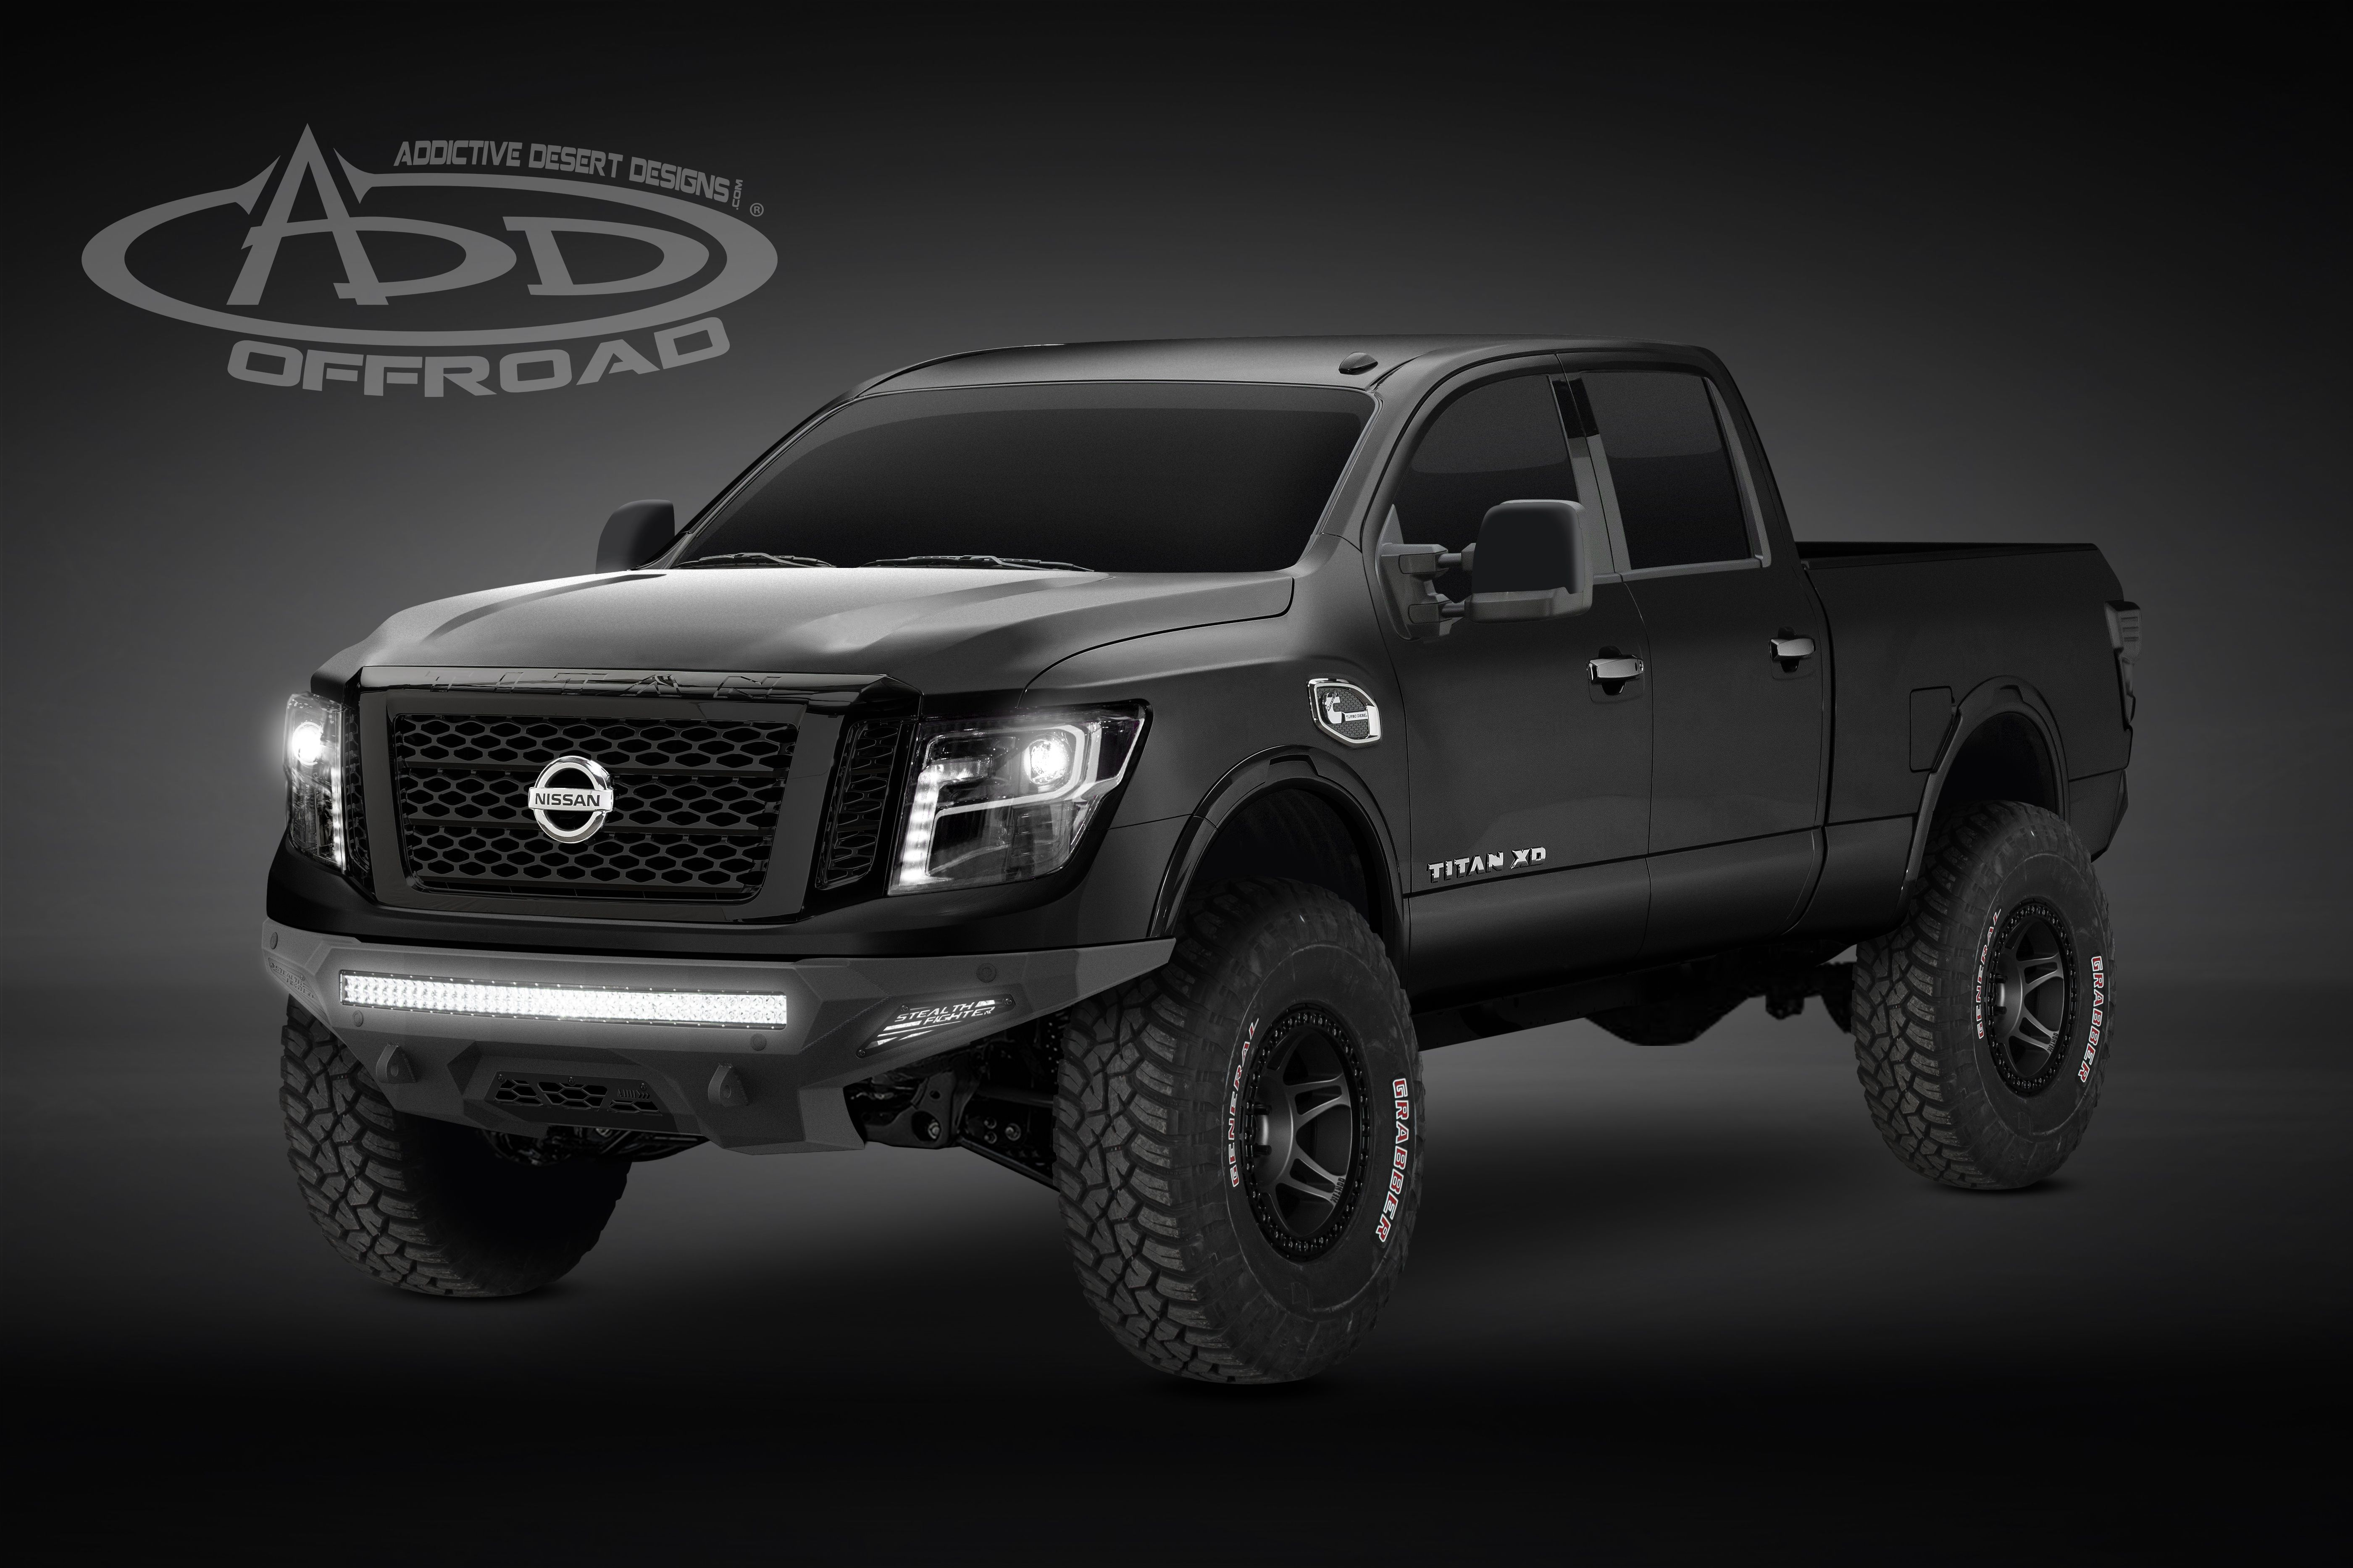 Pin By Joshua Cherry On New Titan In 2020 Nissan Titan Xd Nissan Titan Xd Diesel Nissan Titan